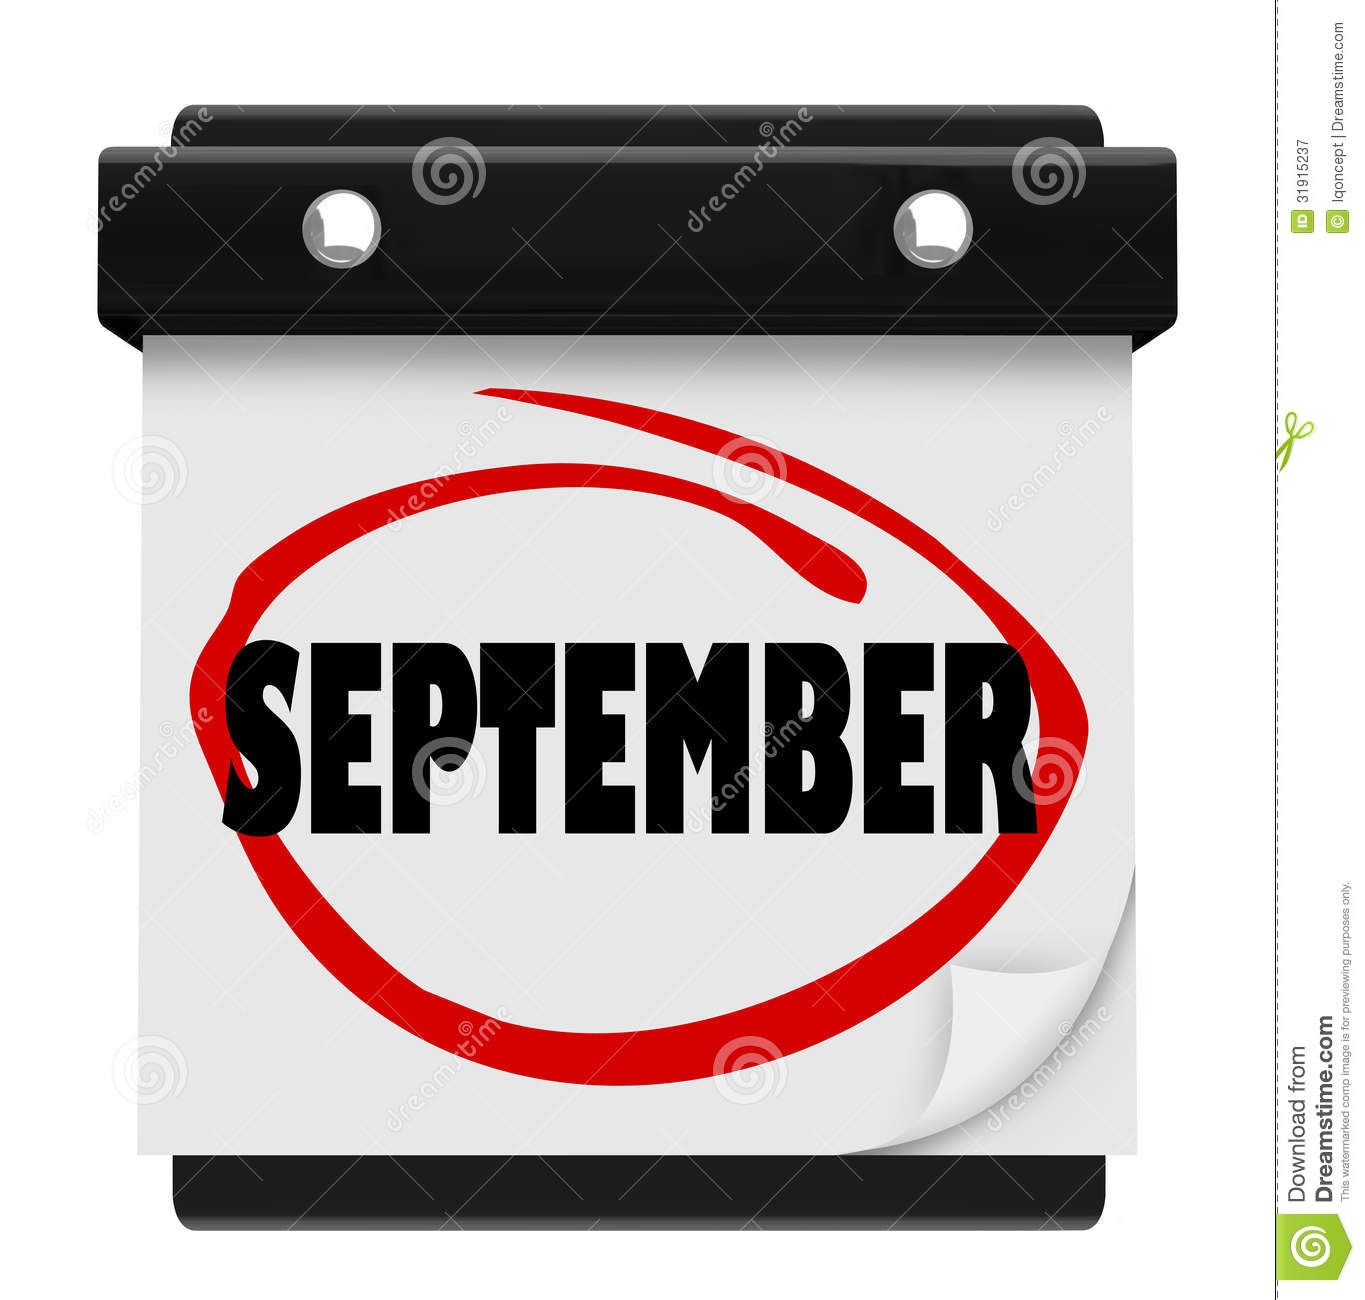 September month calendar clipart freeuse September Word Wall Calendar Change Month Schedule Royalty Free ... freeuse